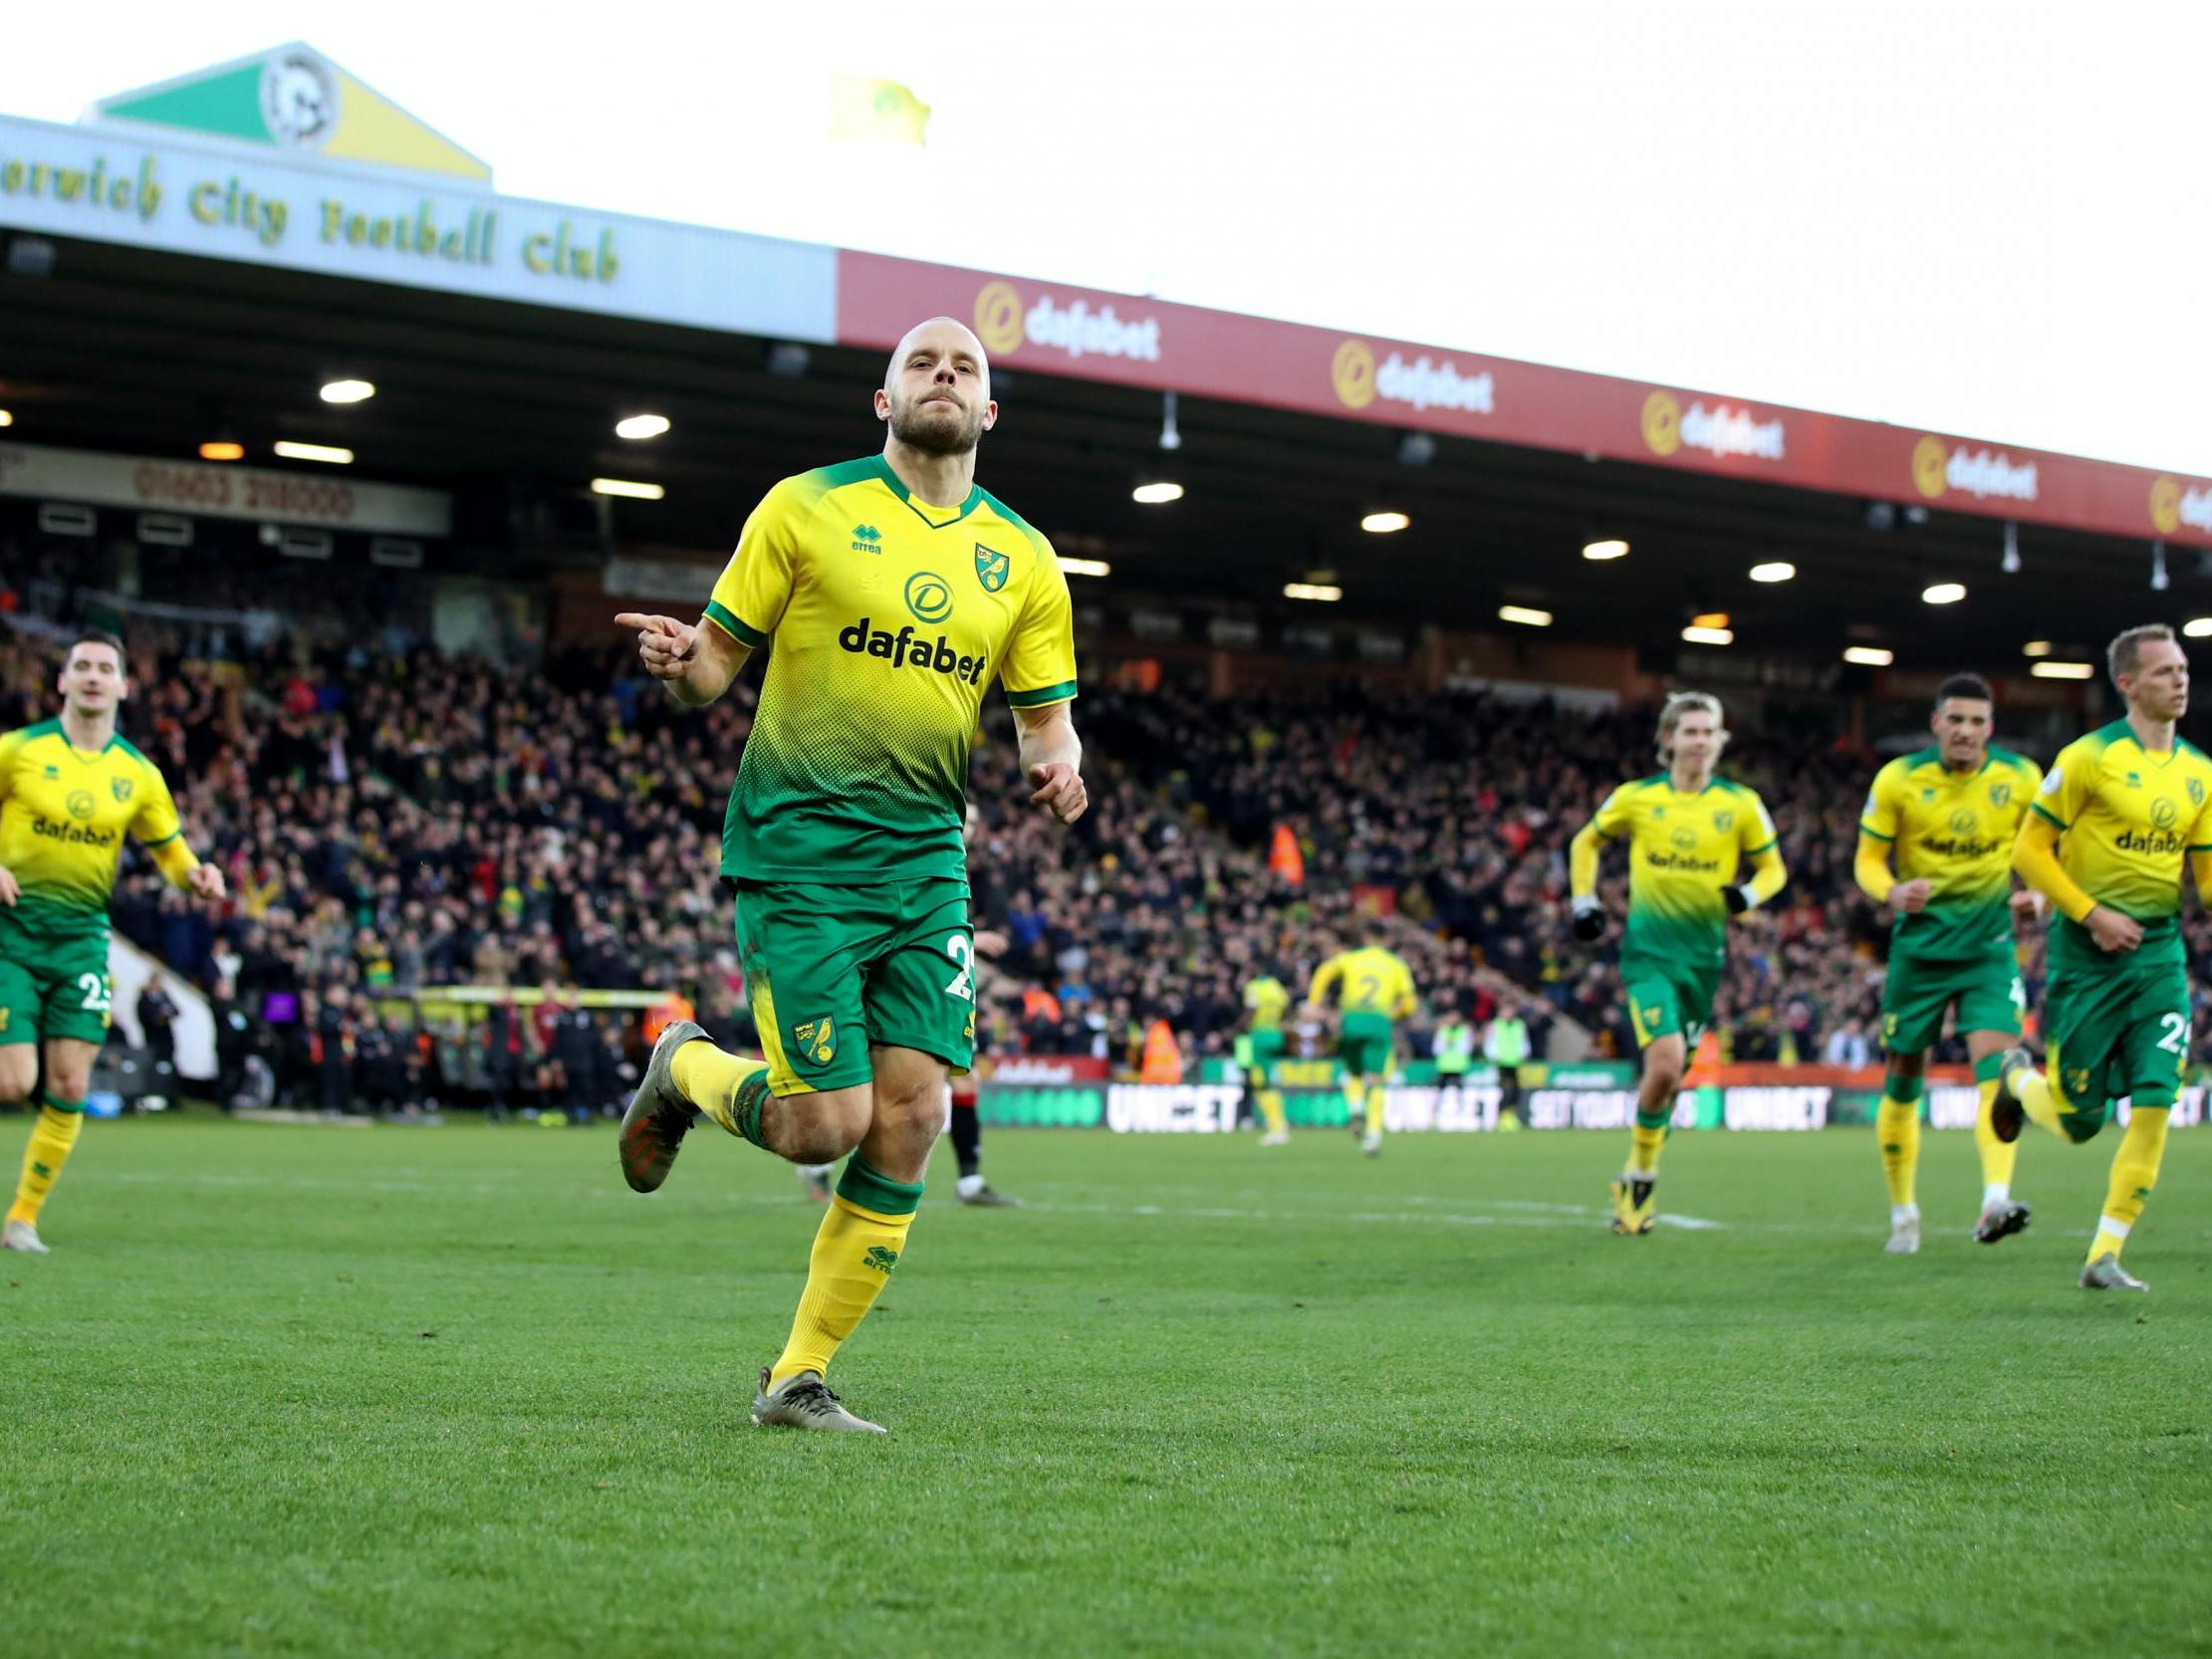 Norwich's survival hopes boosted after basement battle as Wolves stun Southampton in comeback win